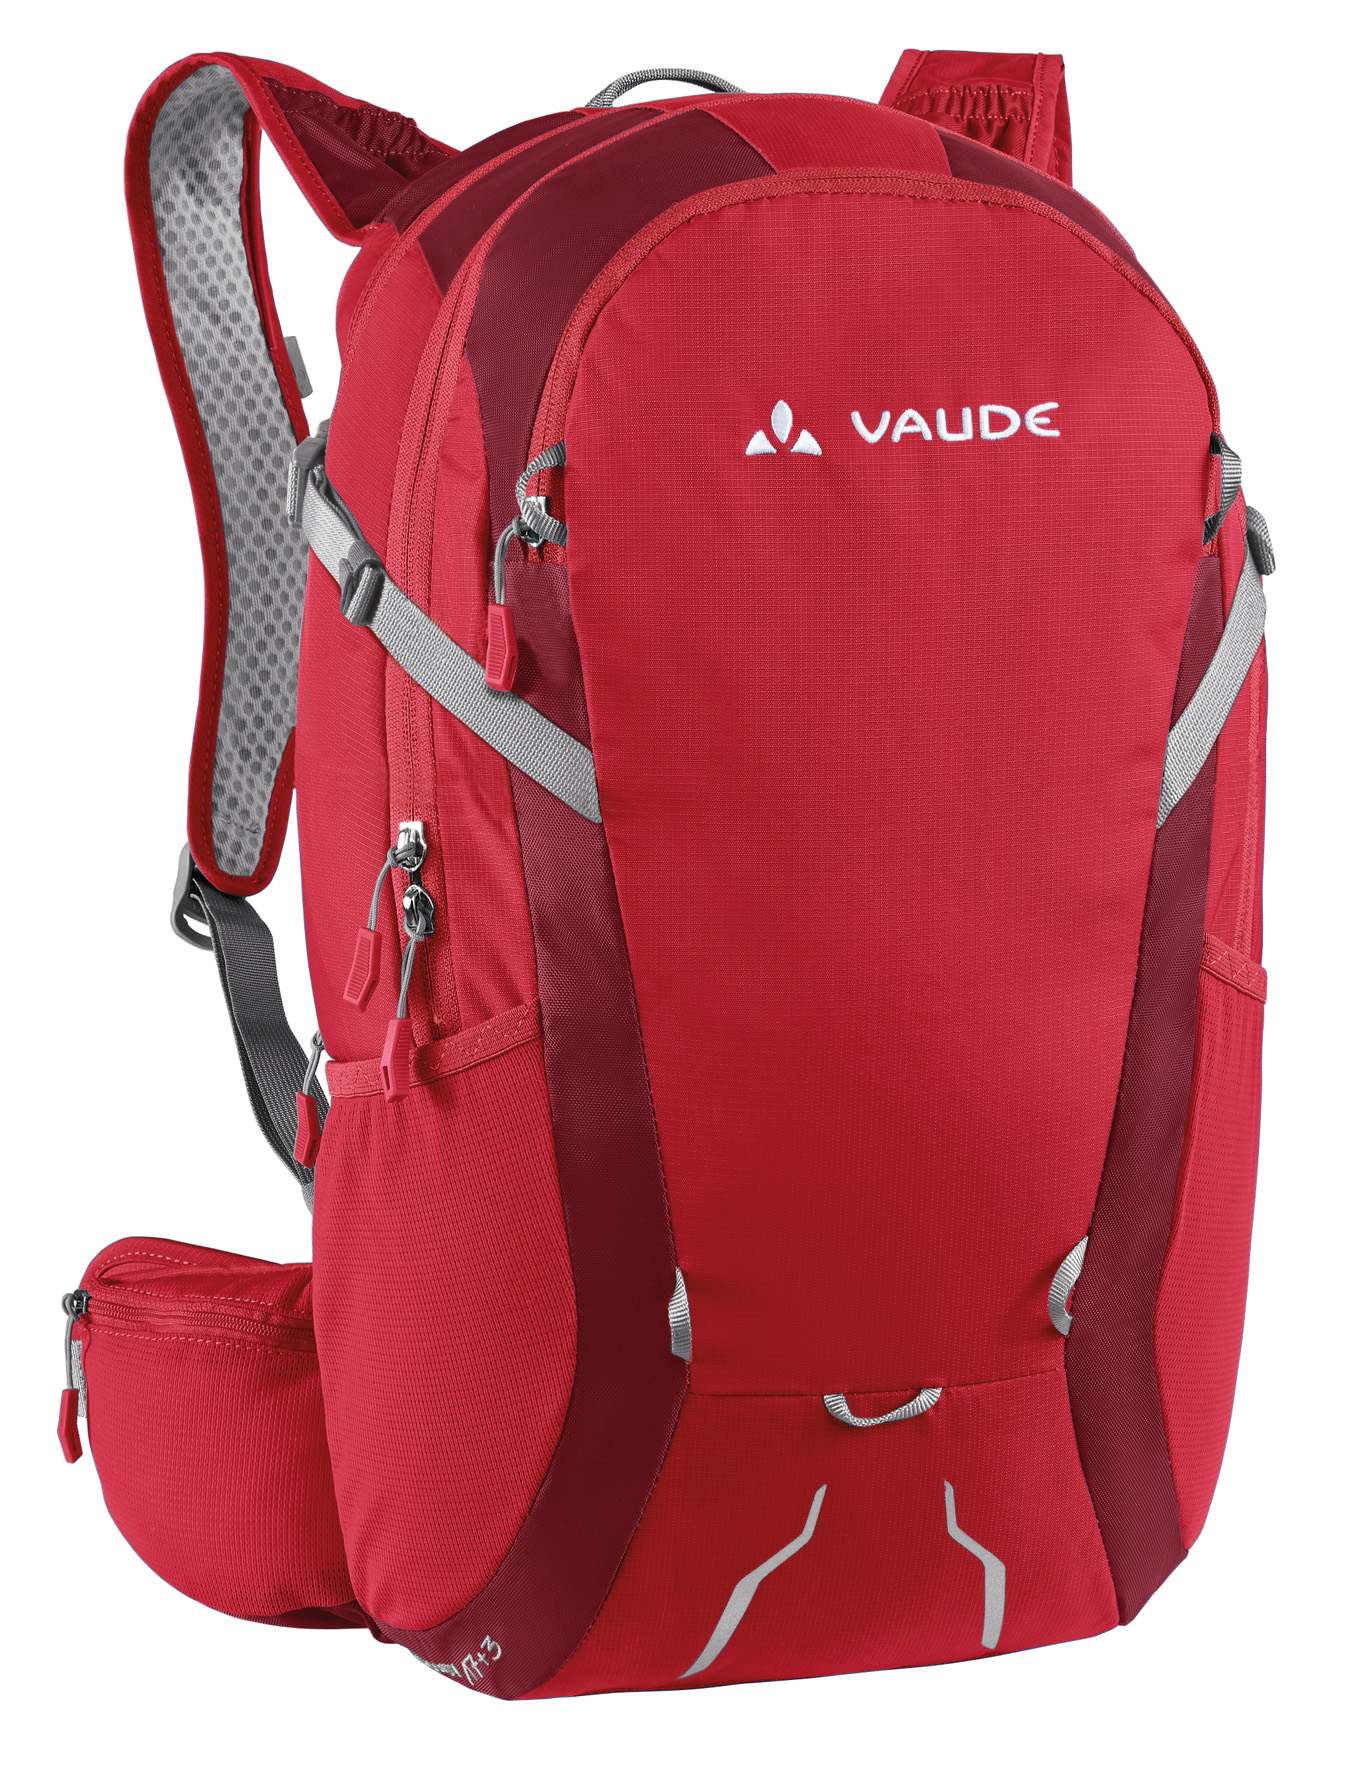 Roomy 17+3 red/salsa  - schneider-sports